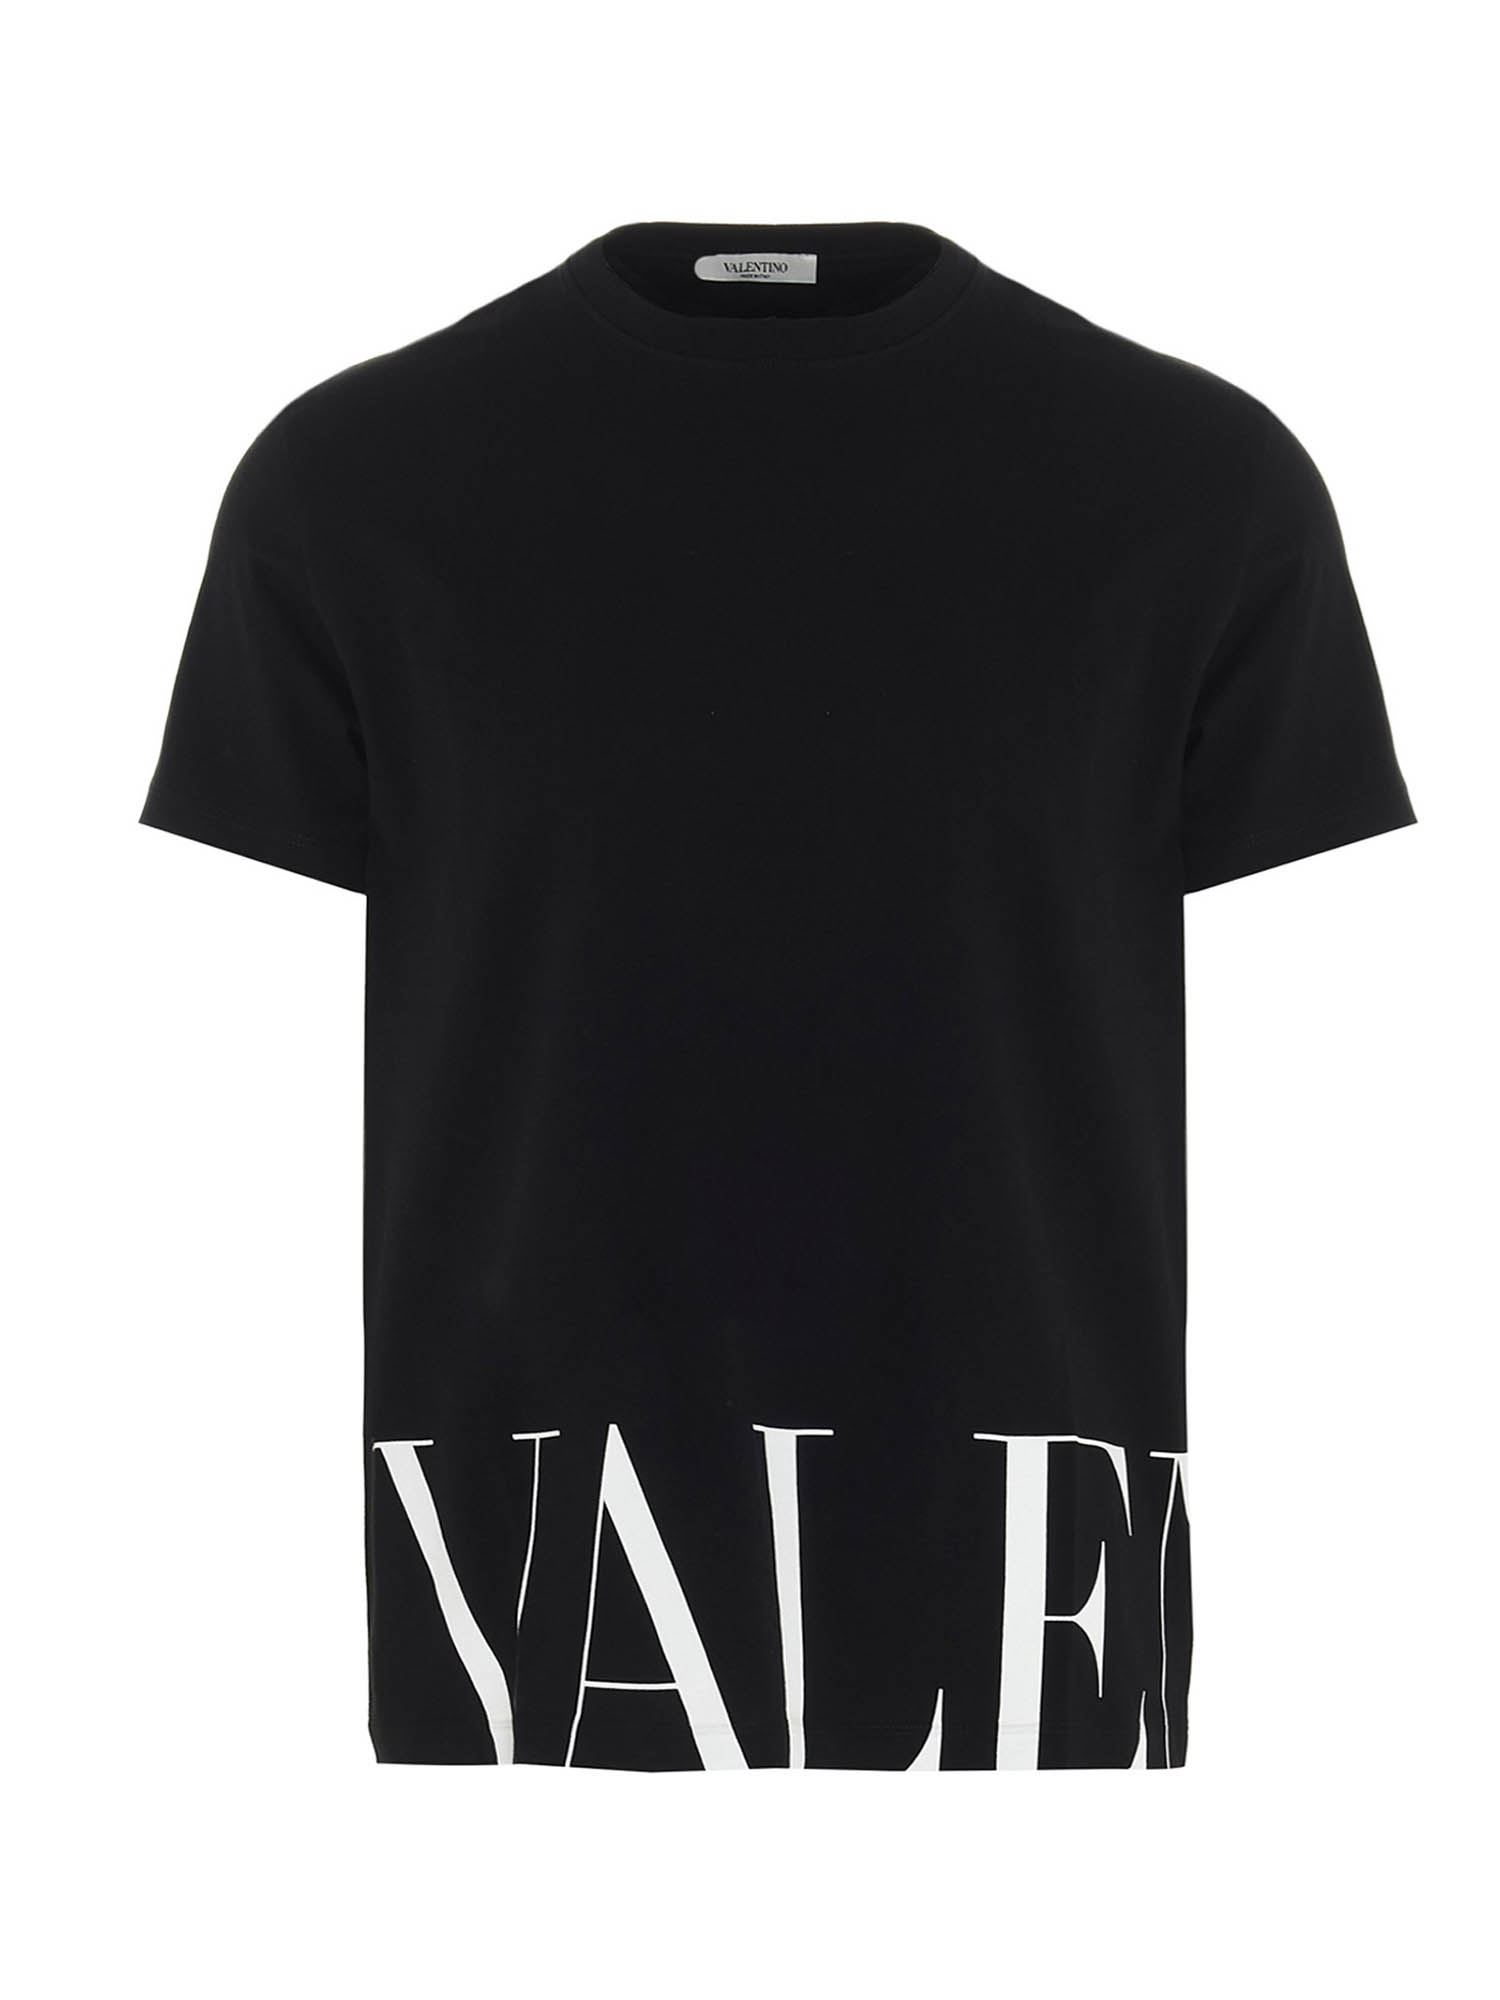 Valentino LOGO PRINT T-SHIRT IN BLACK